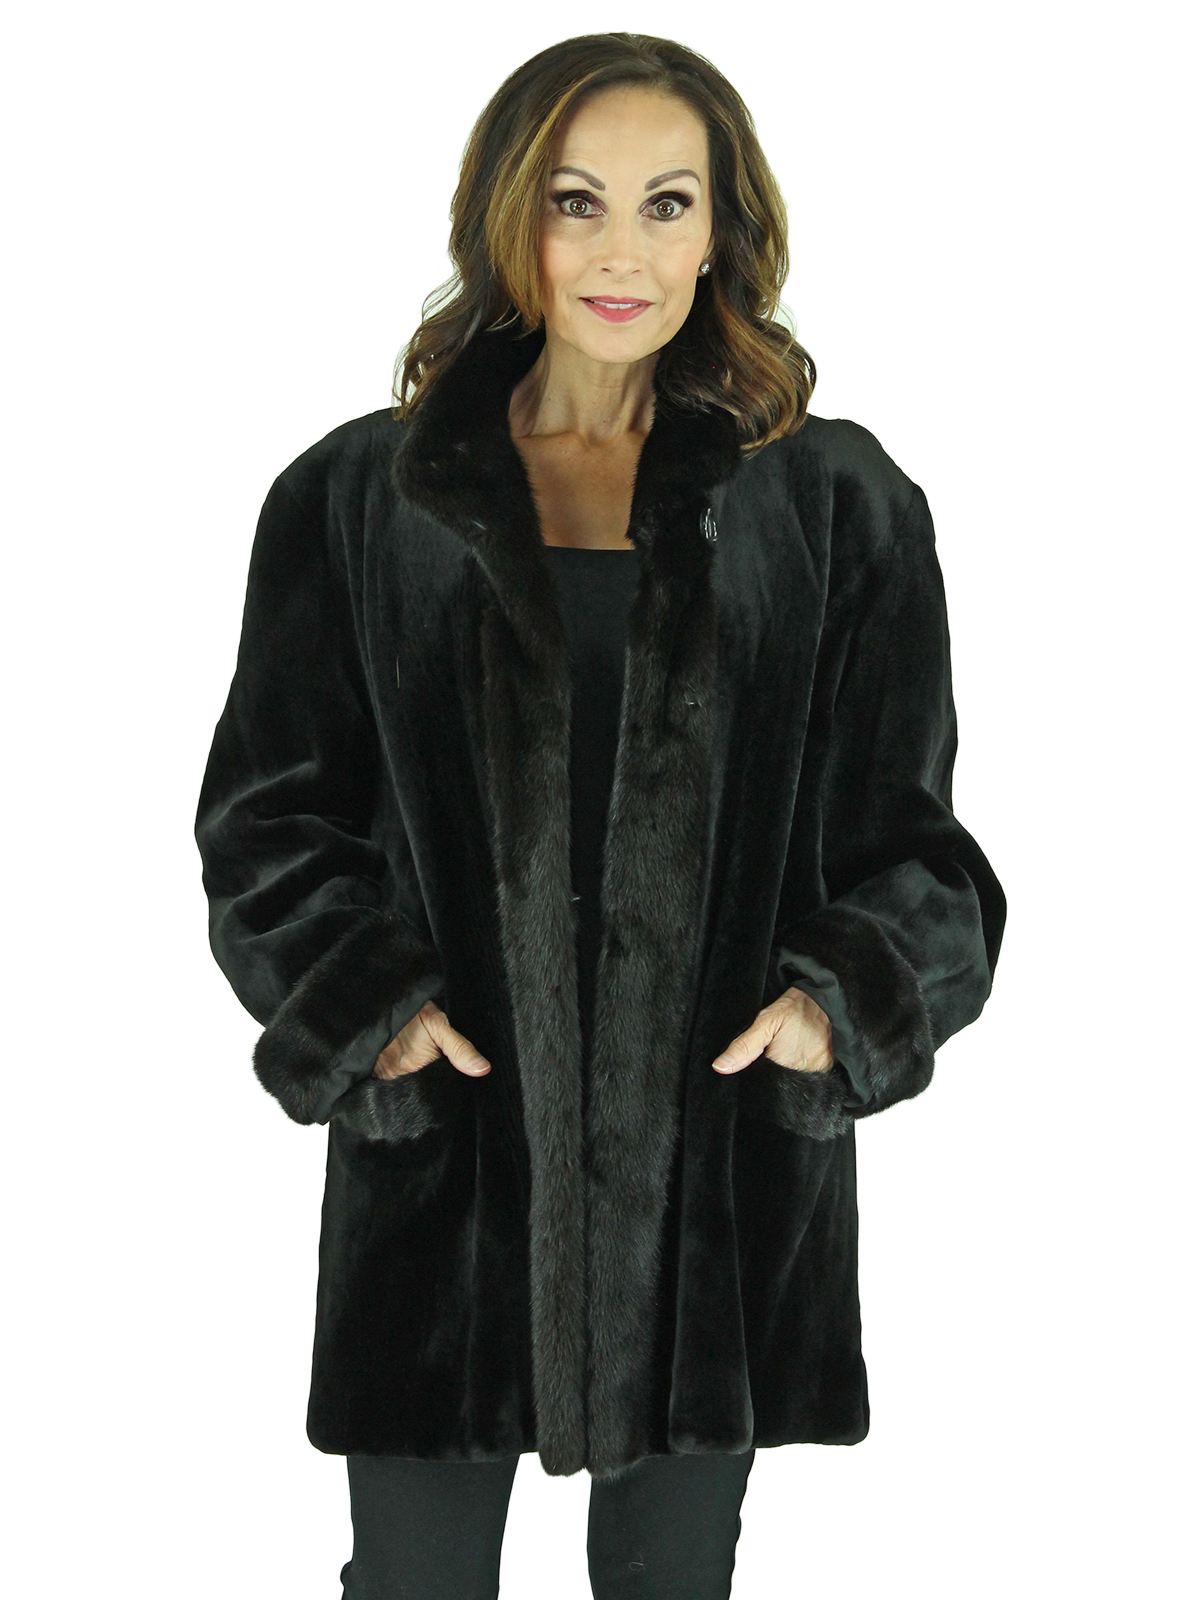 Woman's Black Sheared Mink Fur Jacket with Traditional Mink Trim, Reversible to Rain Fabric